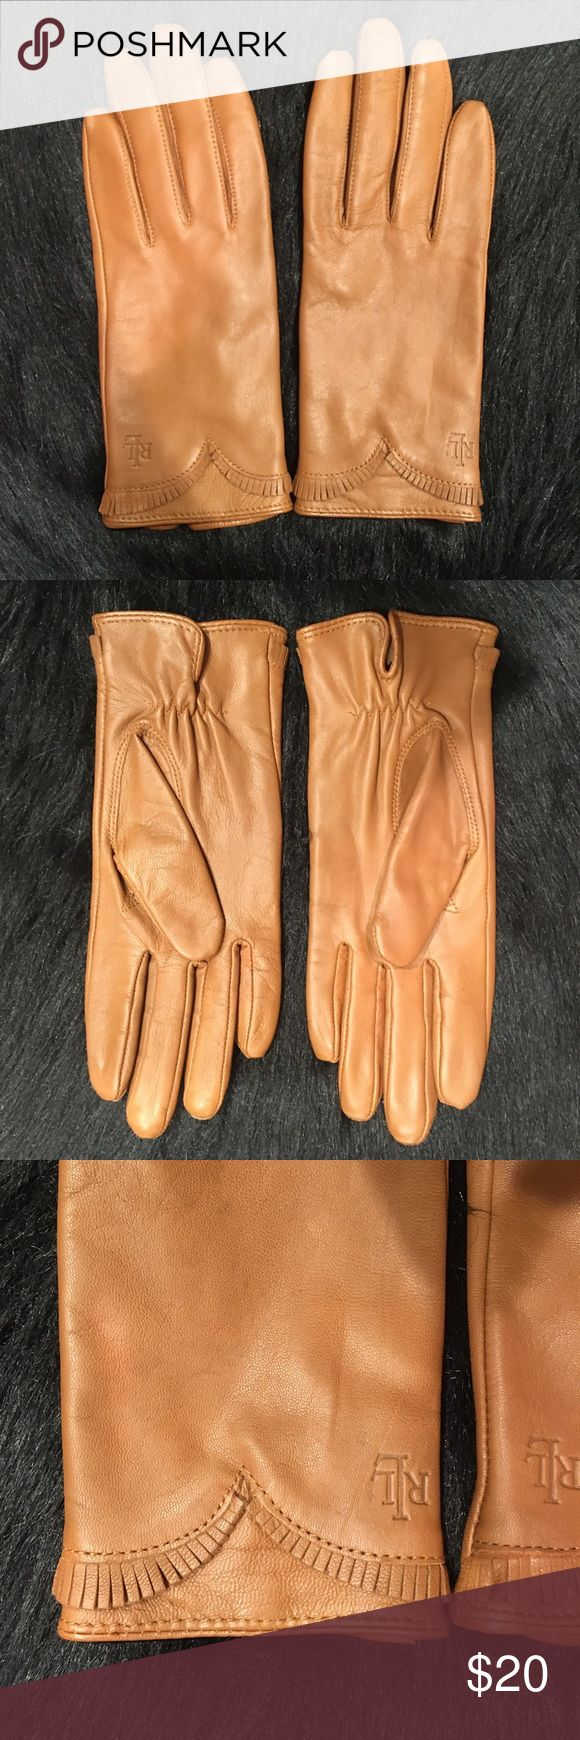 Ralph Lauren Camel Leather Gloves Camel colored leather cloves with camel interior. Beautiful fringe detail on front. Perfect condition! So warm! Ralph Lauren Accessories Gloves & Mittens